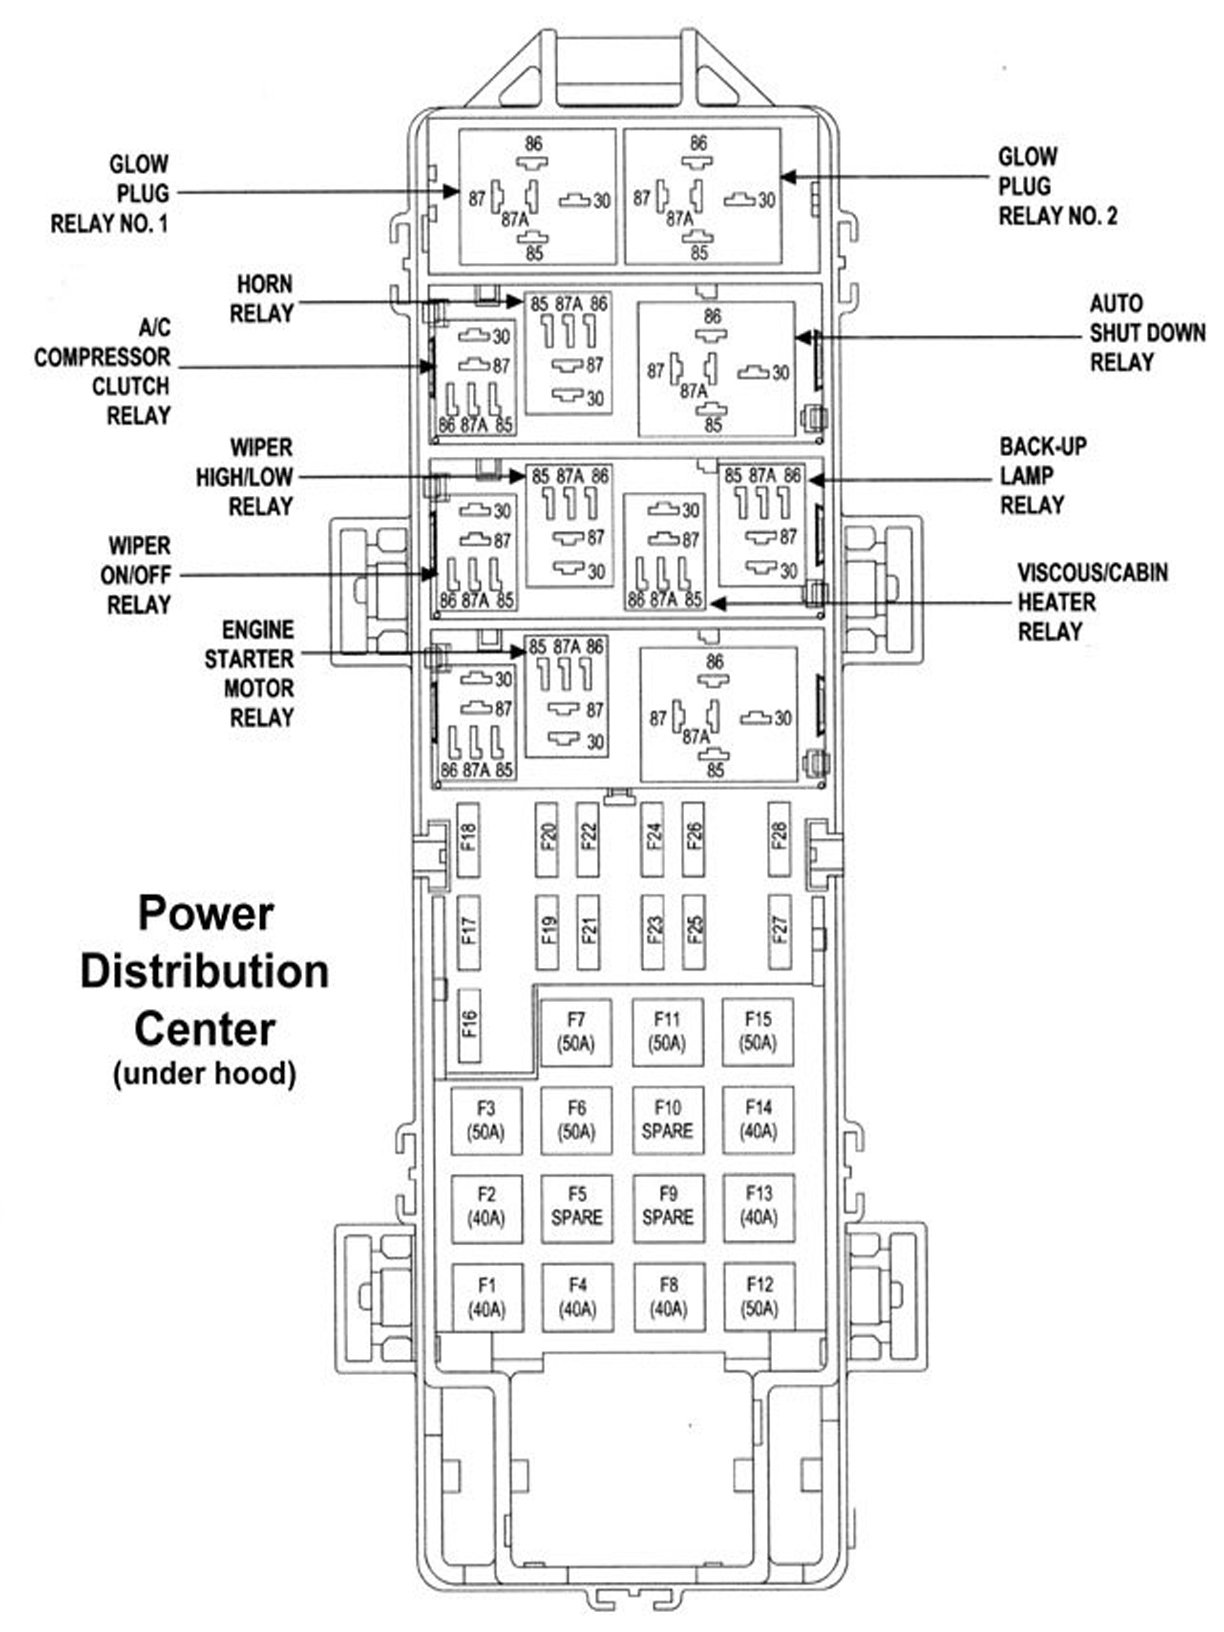 DIAGRAM] 92 Jeep Cherokee Fuse Box Diagram FULL Version HD Quality Box  Diagram - STRUCTUREDSETTLEME.NIBERMA.FRstructuredsettleme.niberma.fr